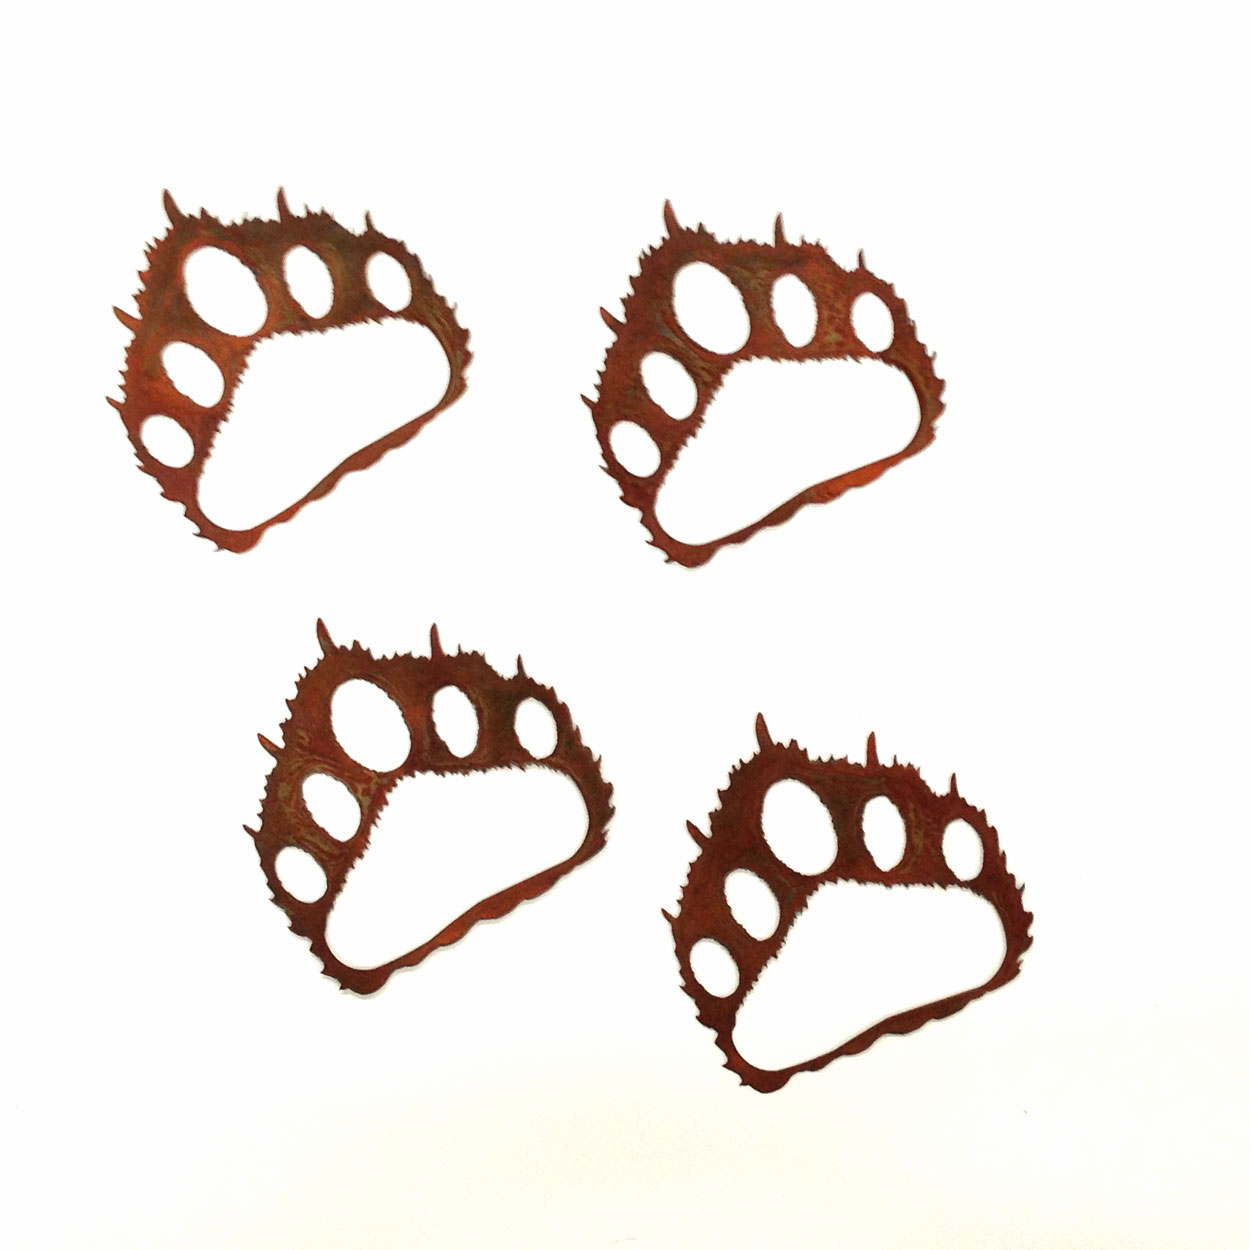 48 bear paw art free cliparts that you can download to you computer ...